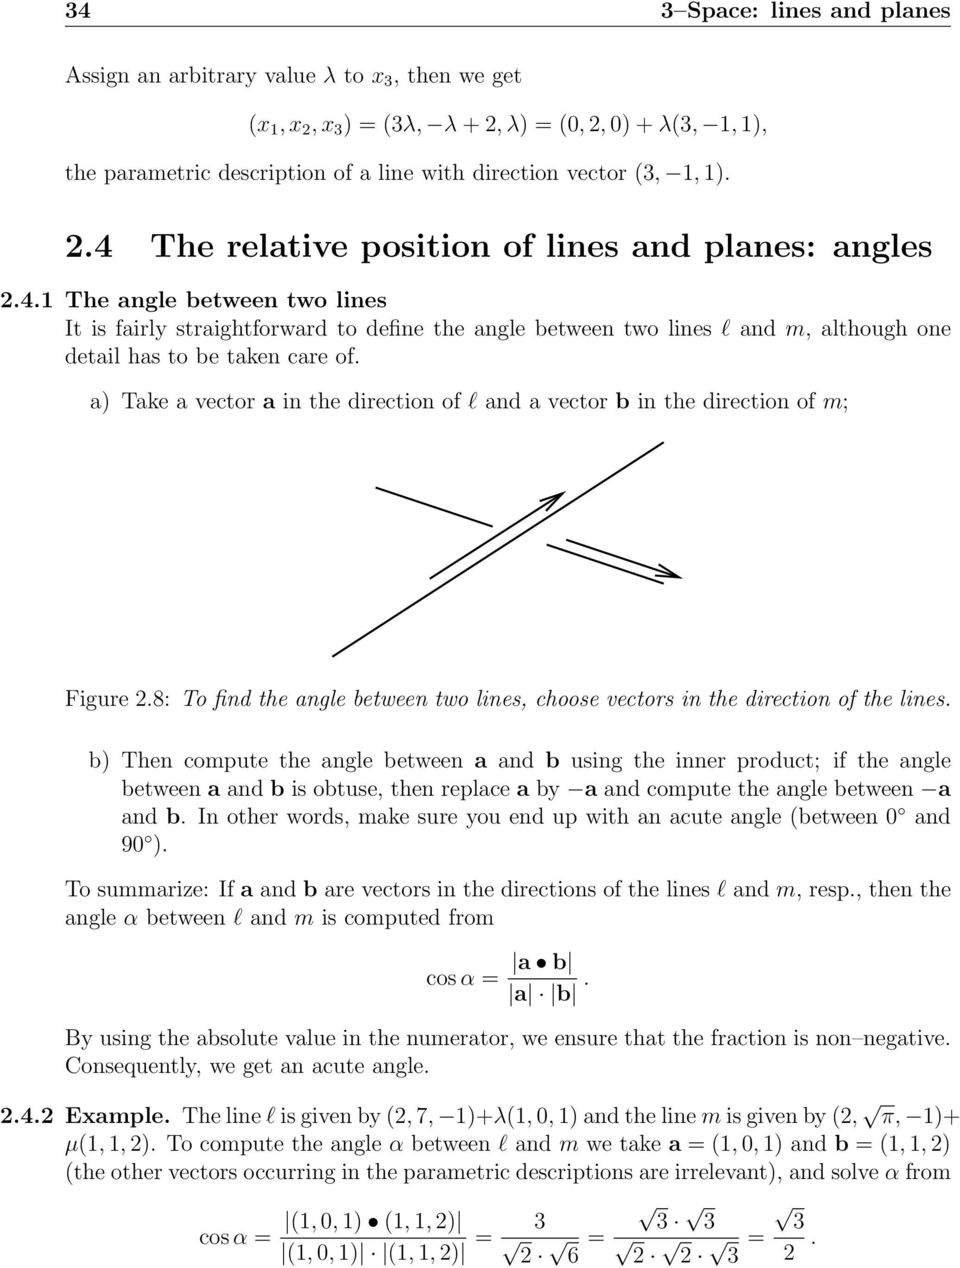 a) Take a vector a in the direction of l and a vector b in the direction of m; Figure 2.8: To find the angle between two lines, choose vectors in the direction of the lines.